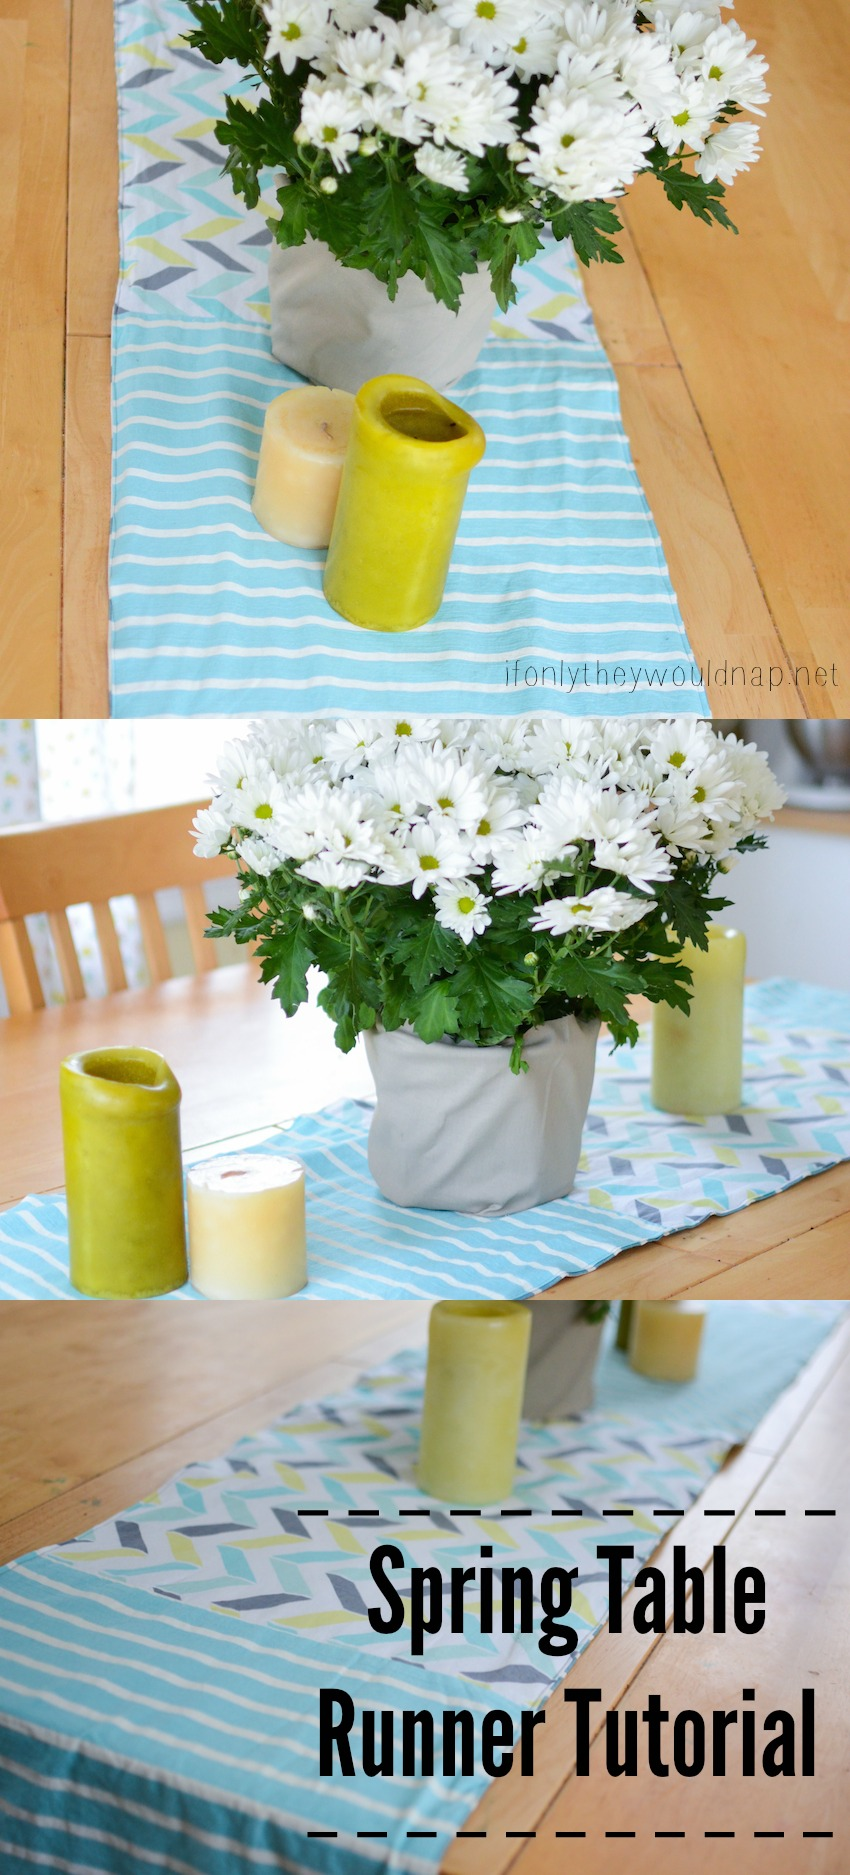 Spring Table Runner Tutorial from If Only They Would Nap